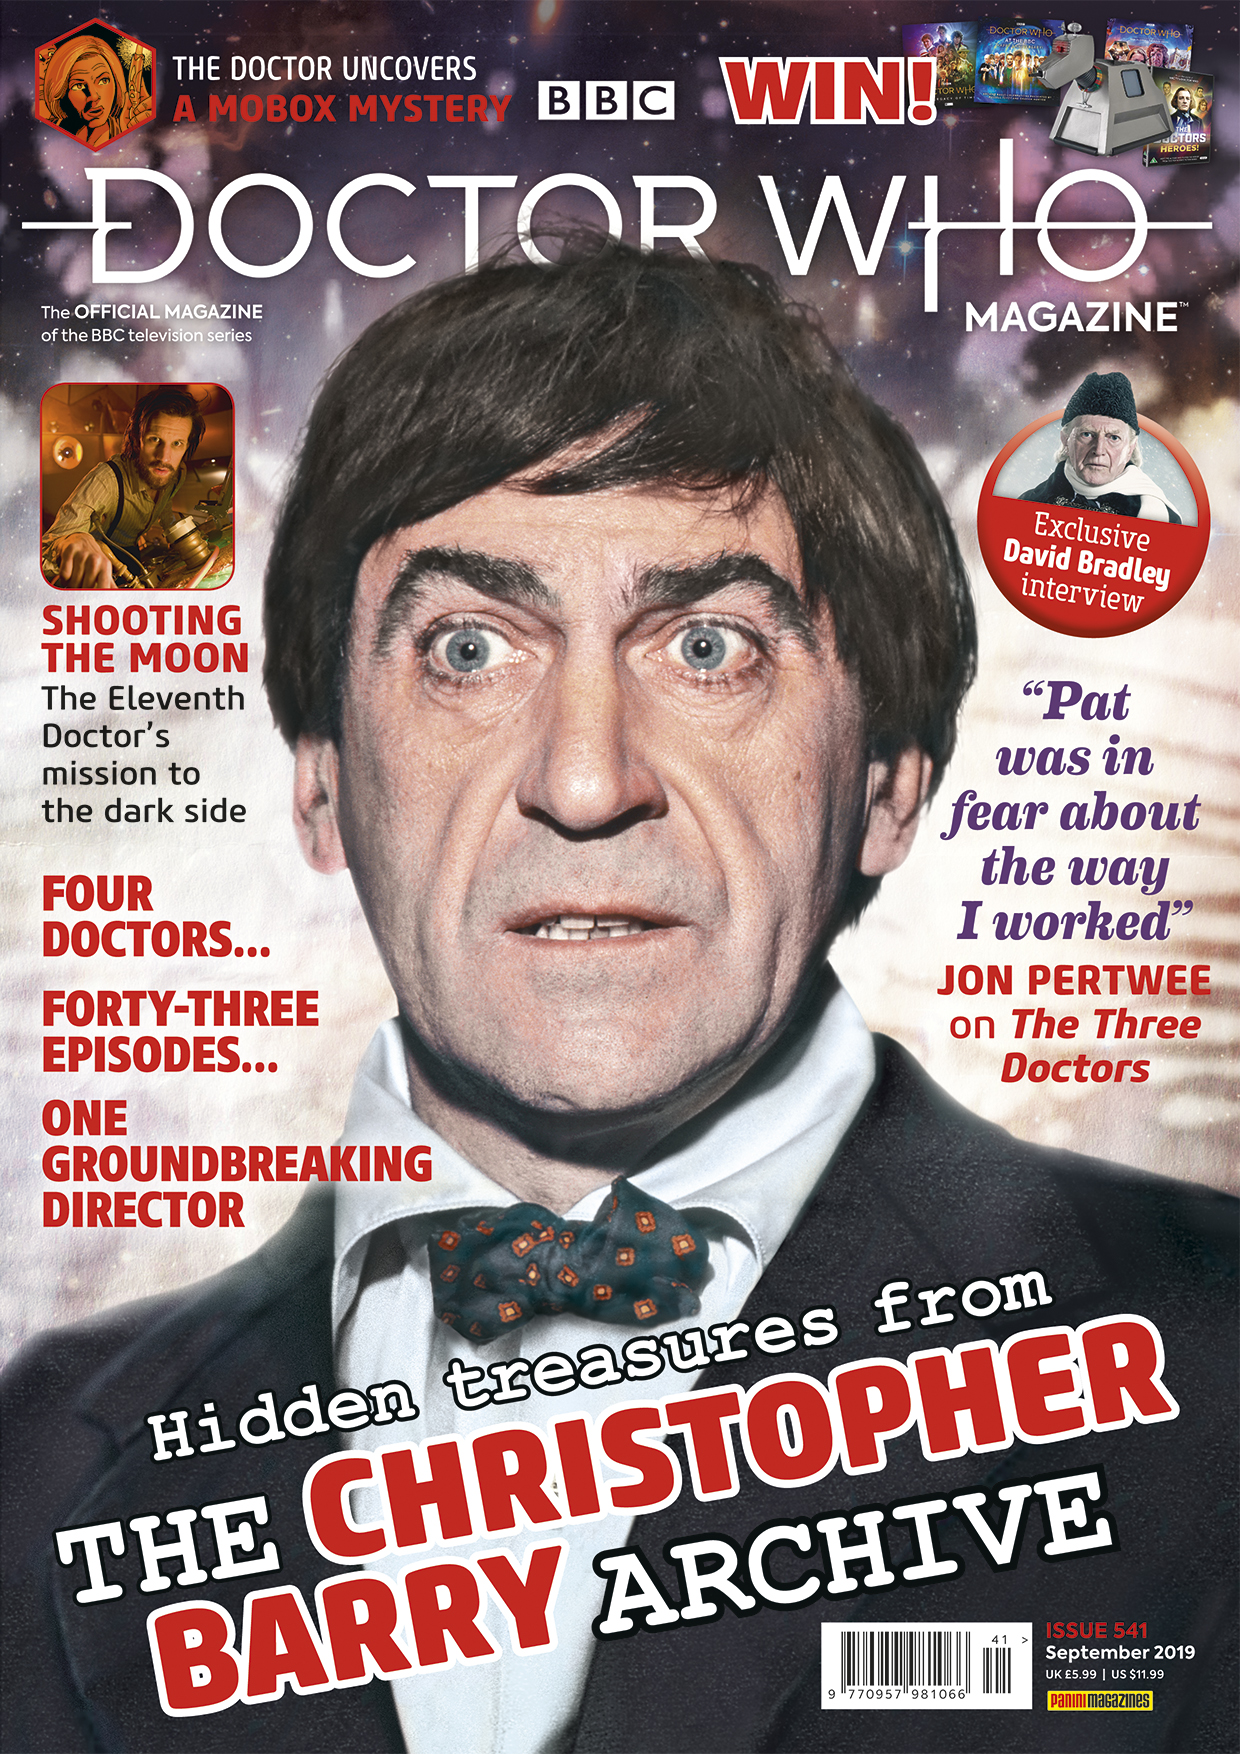 Doctor Who Magazine 541